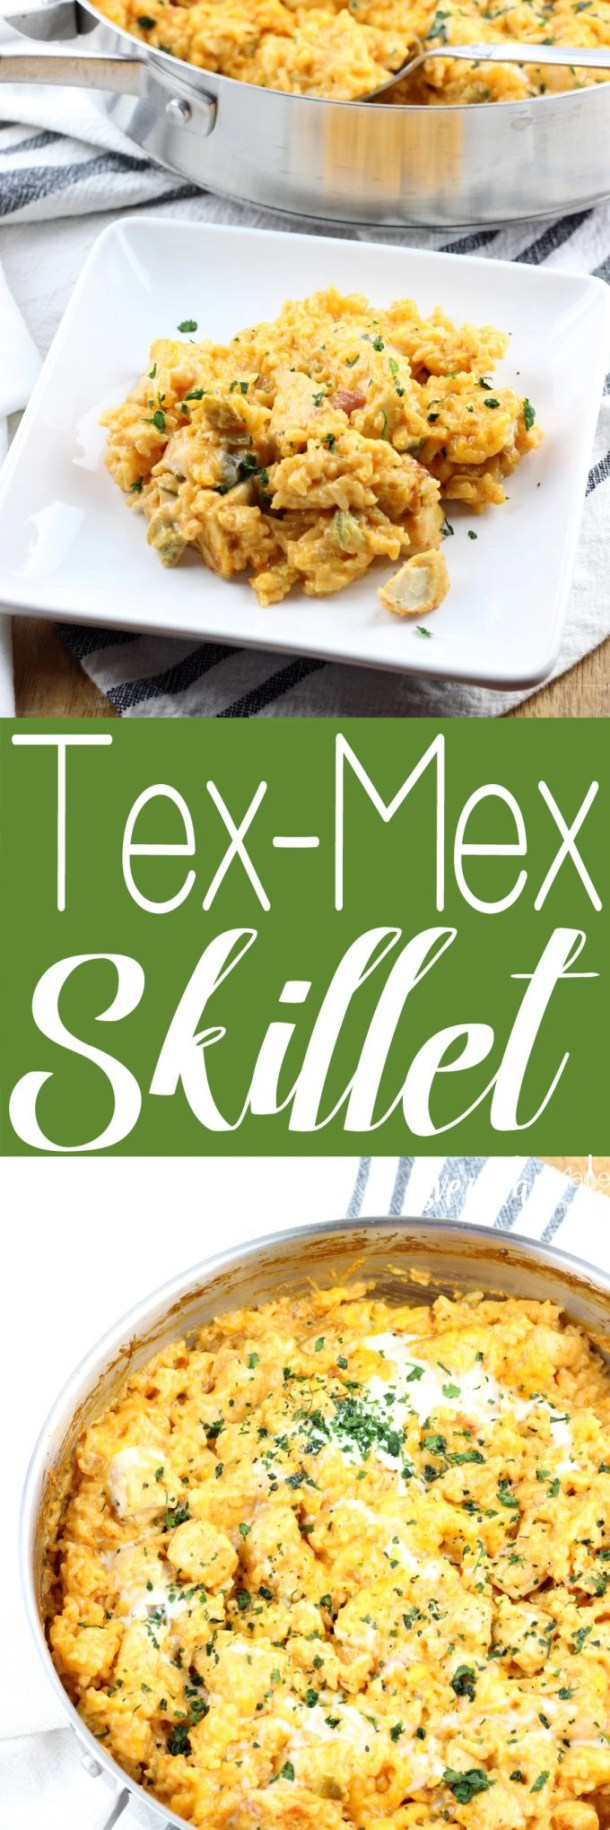 An easy dinner made all in one skillet. This Tex-Mex Skillet is loaded with chicken, rice, all the spices, and queso cheese! | EverdayMadeFresh.com